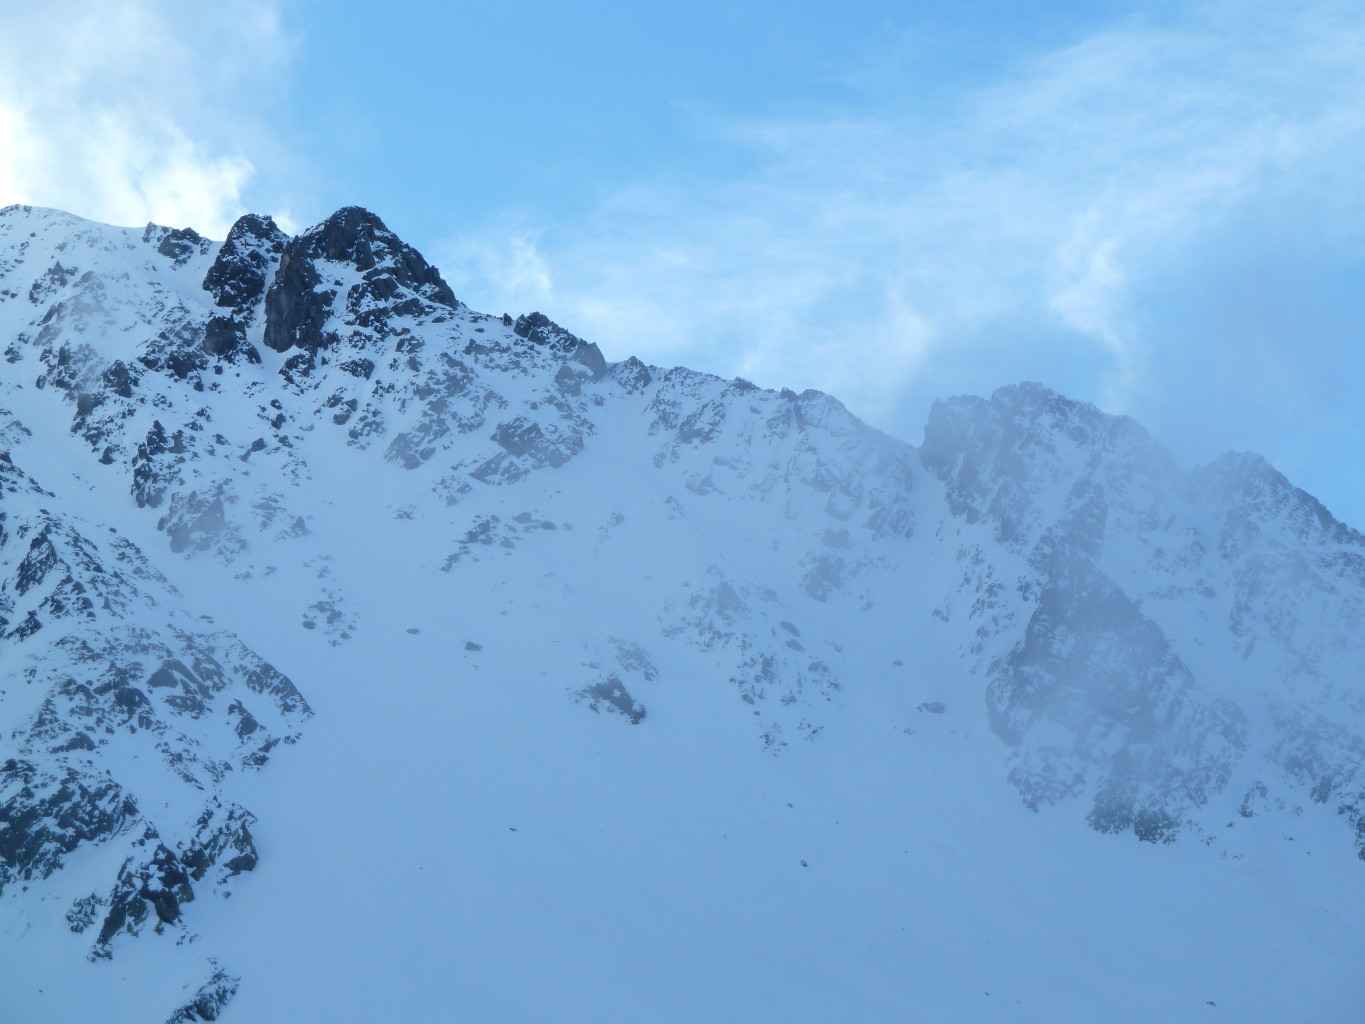 Couloir colomines